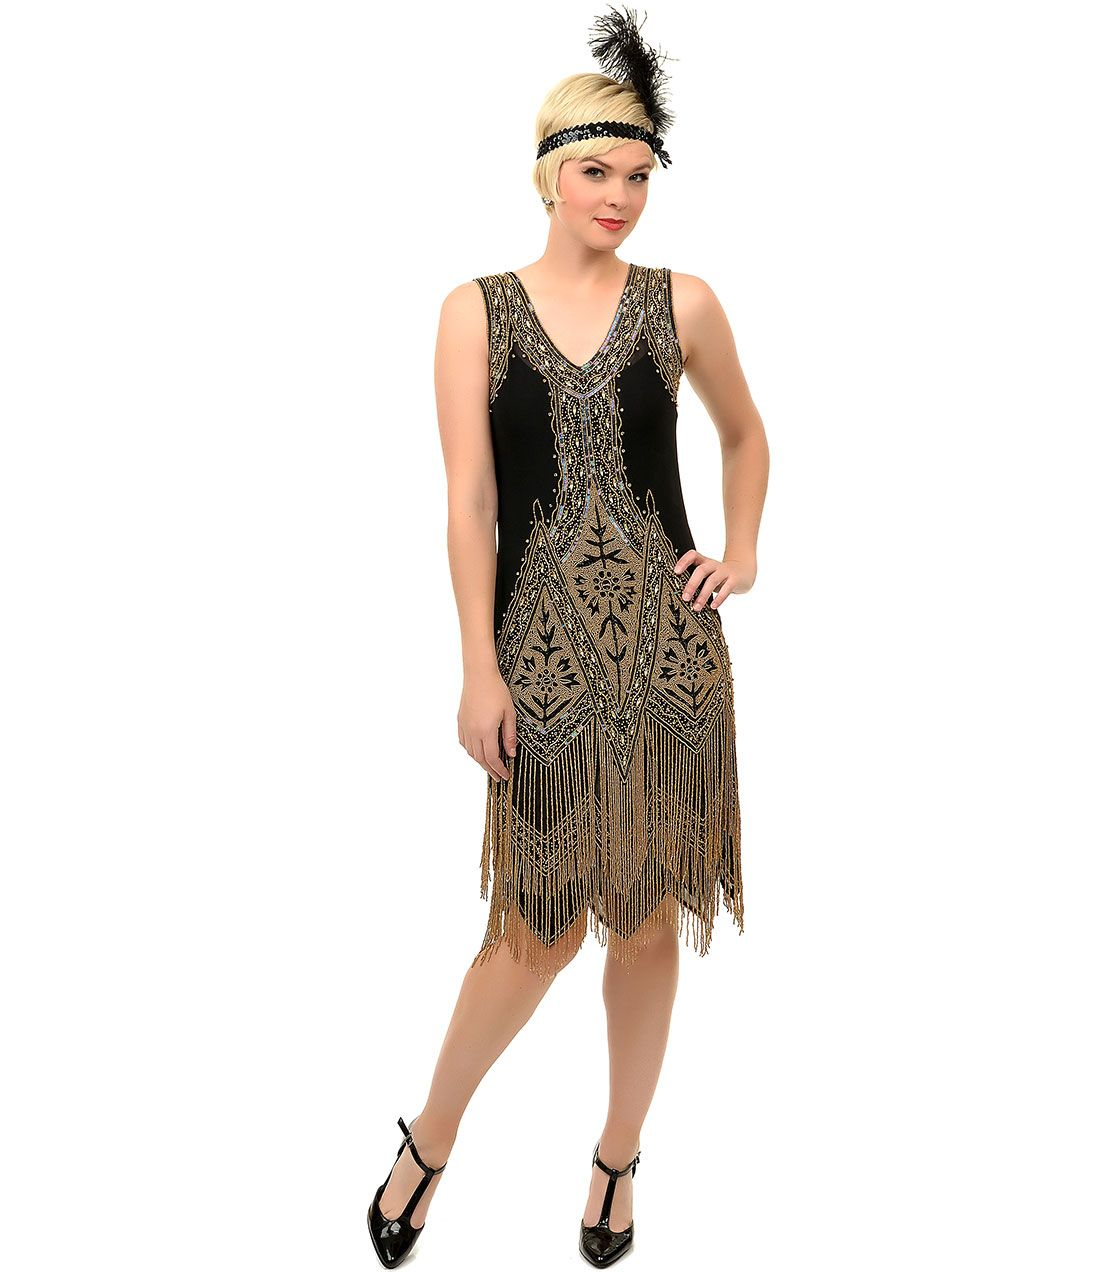 1920\'s Style Dresses: Flapper Dresses to Gatsby dresses